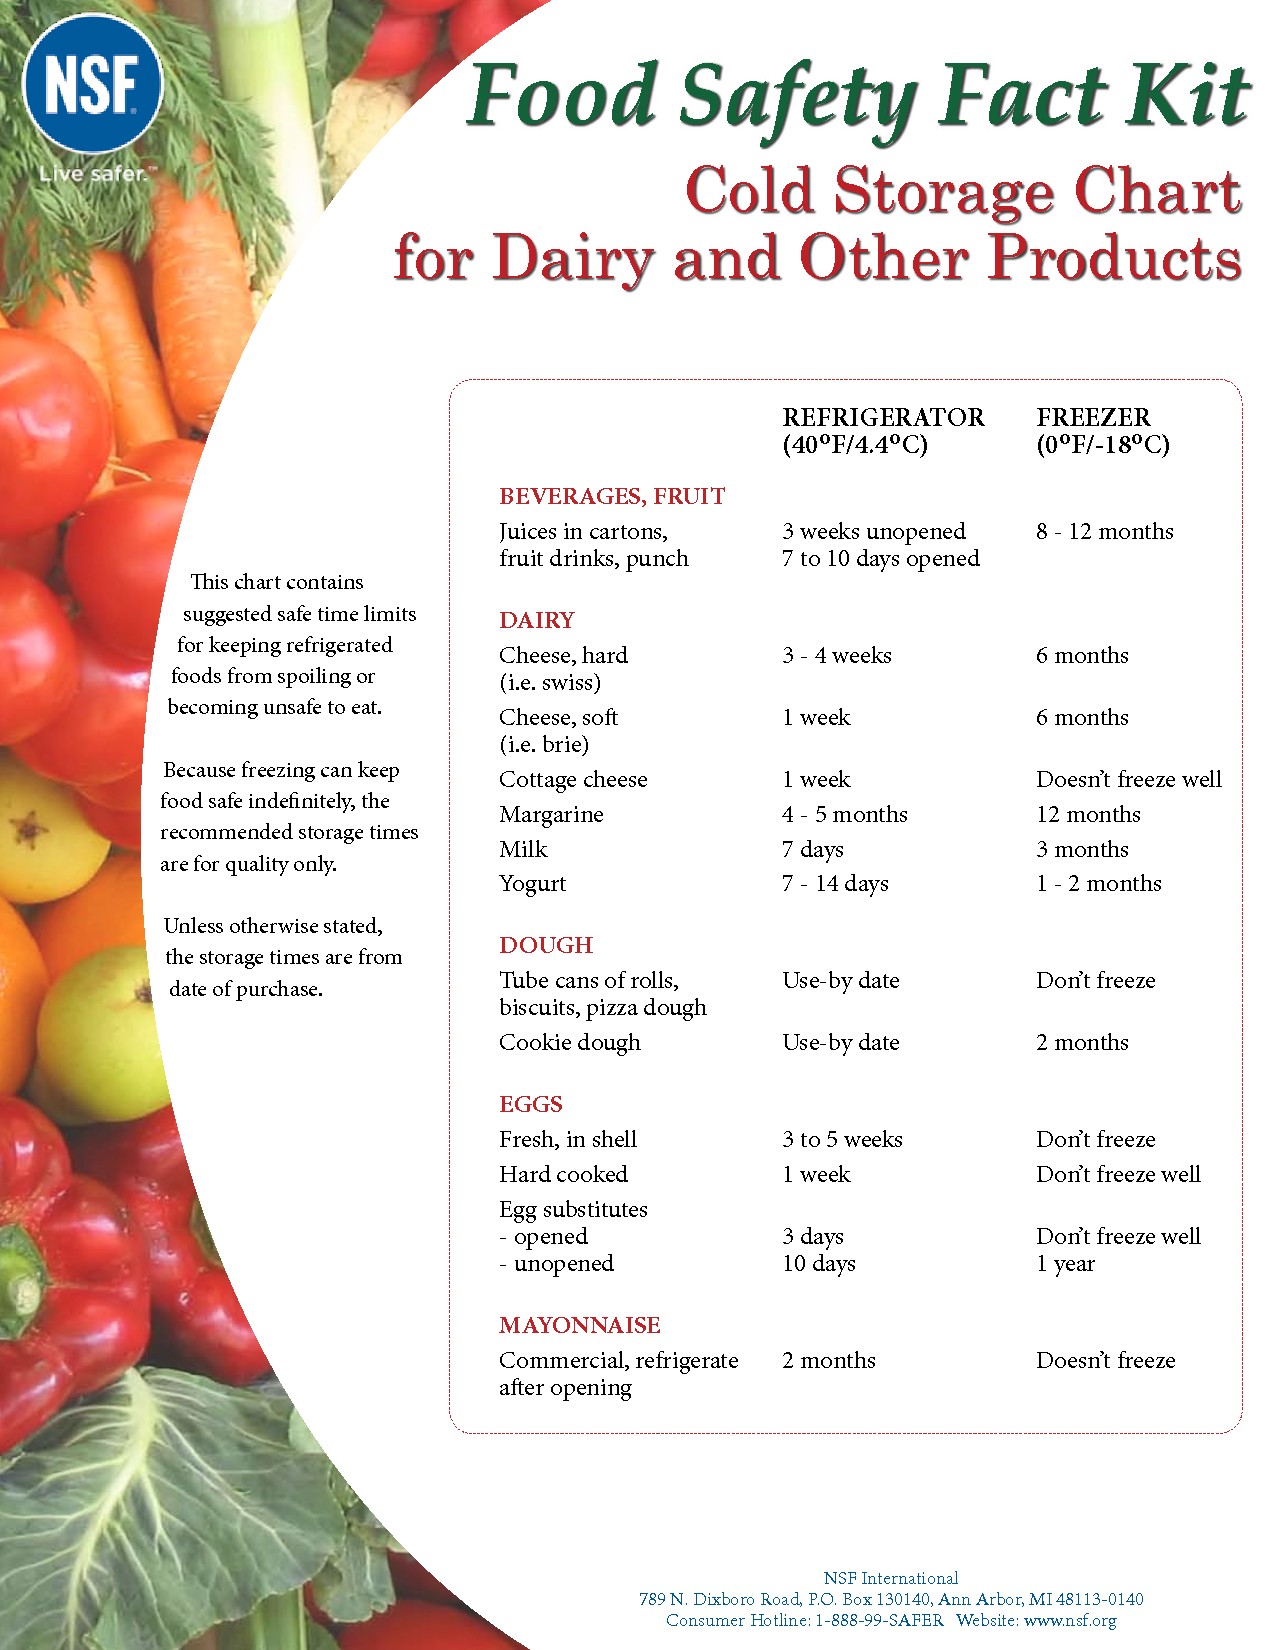 Food Safety Chart Free Google Search Food Safety Training Food Safety And Sanitation Hygienic Food